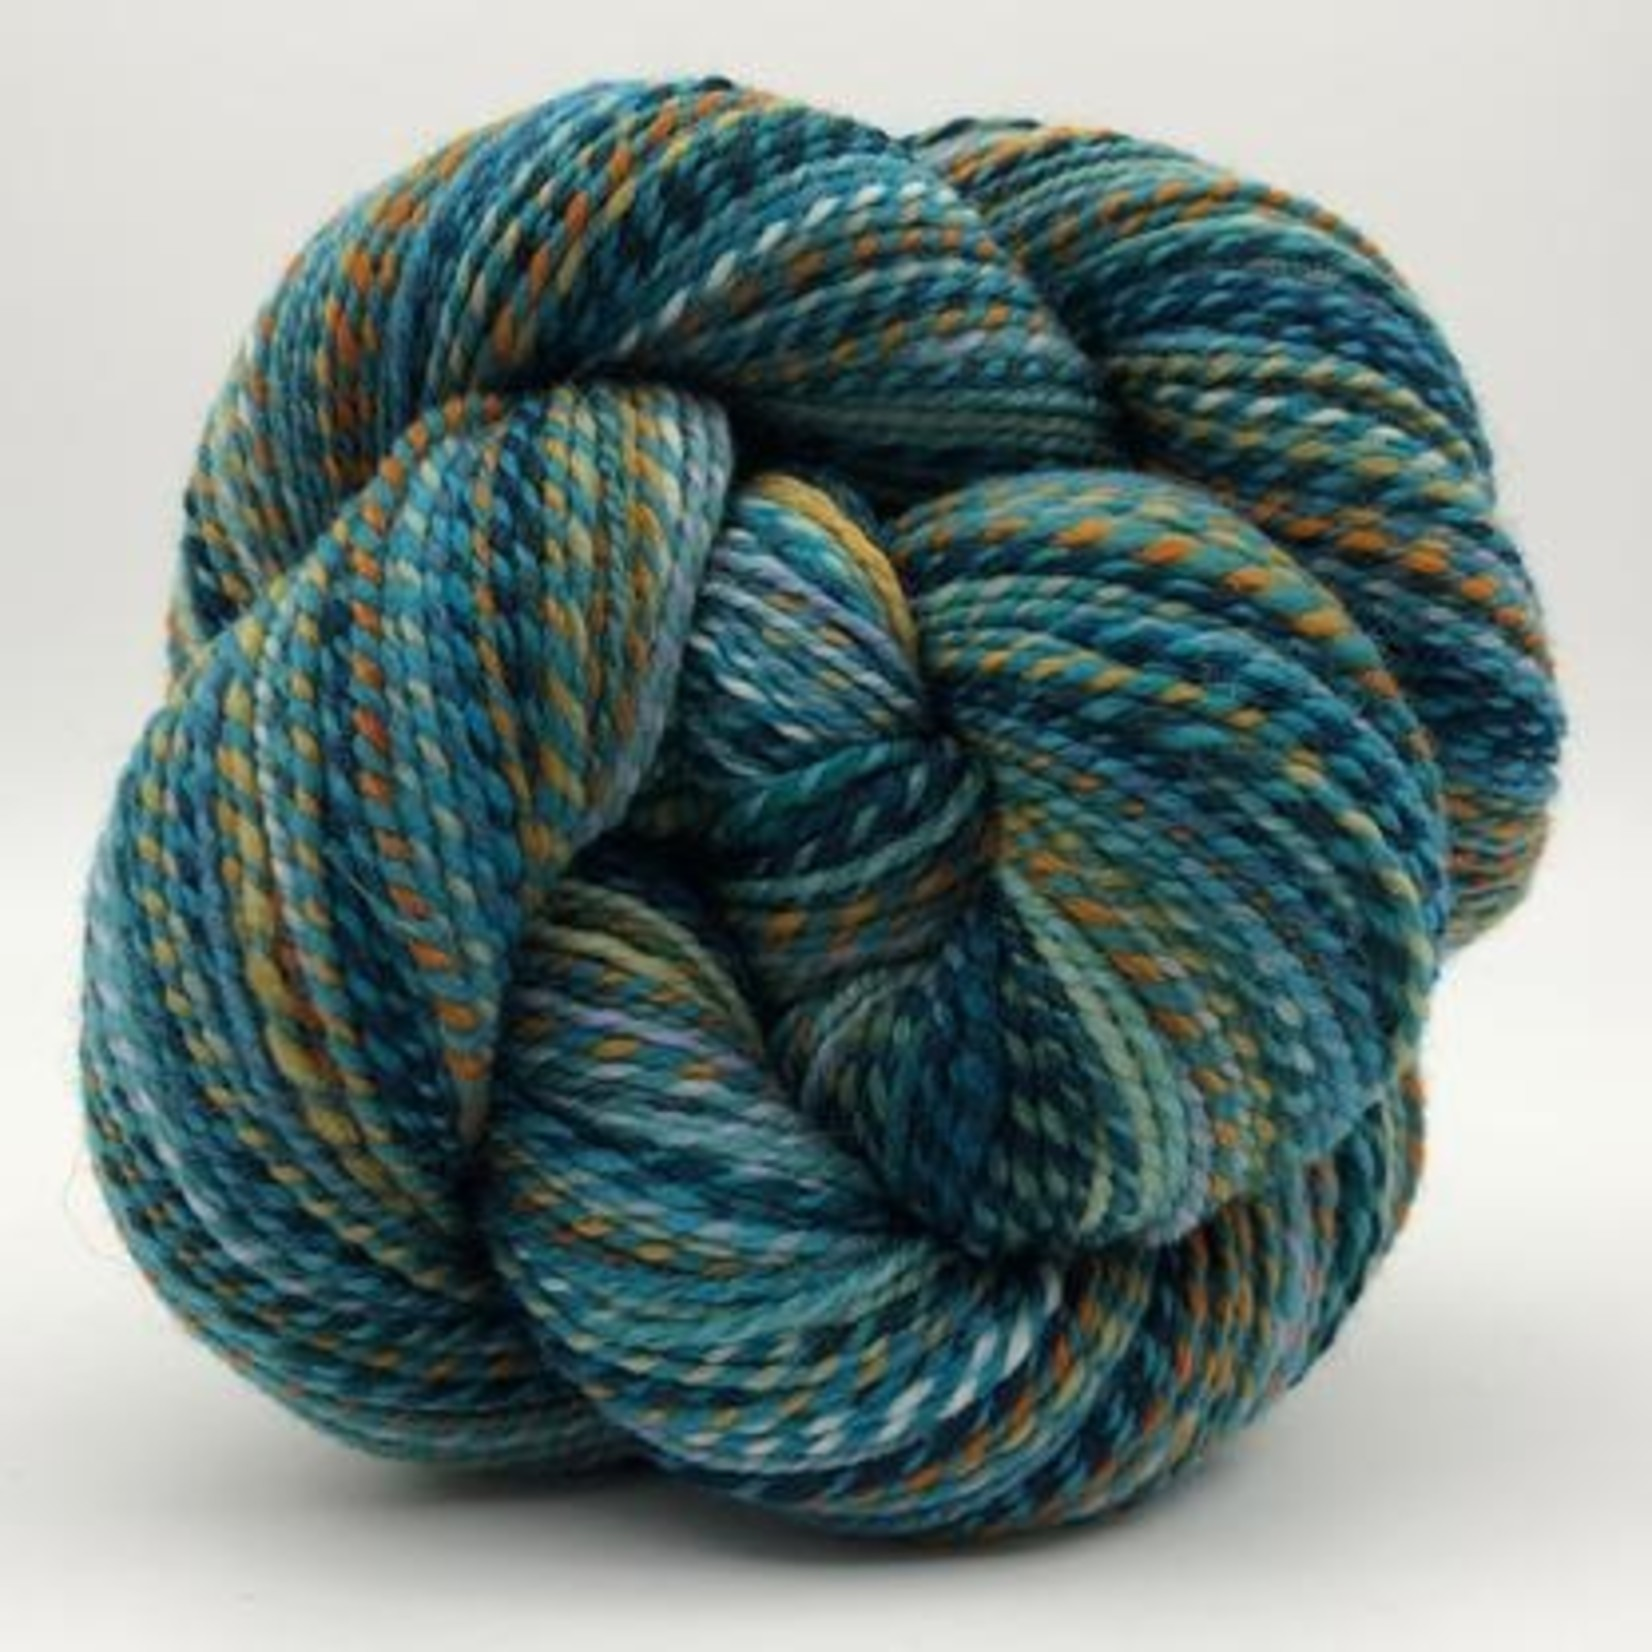 Spincycle Yarn Dyed in the Wool, The Family Jewel